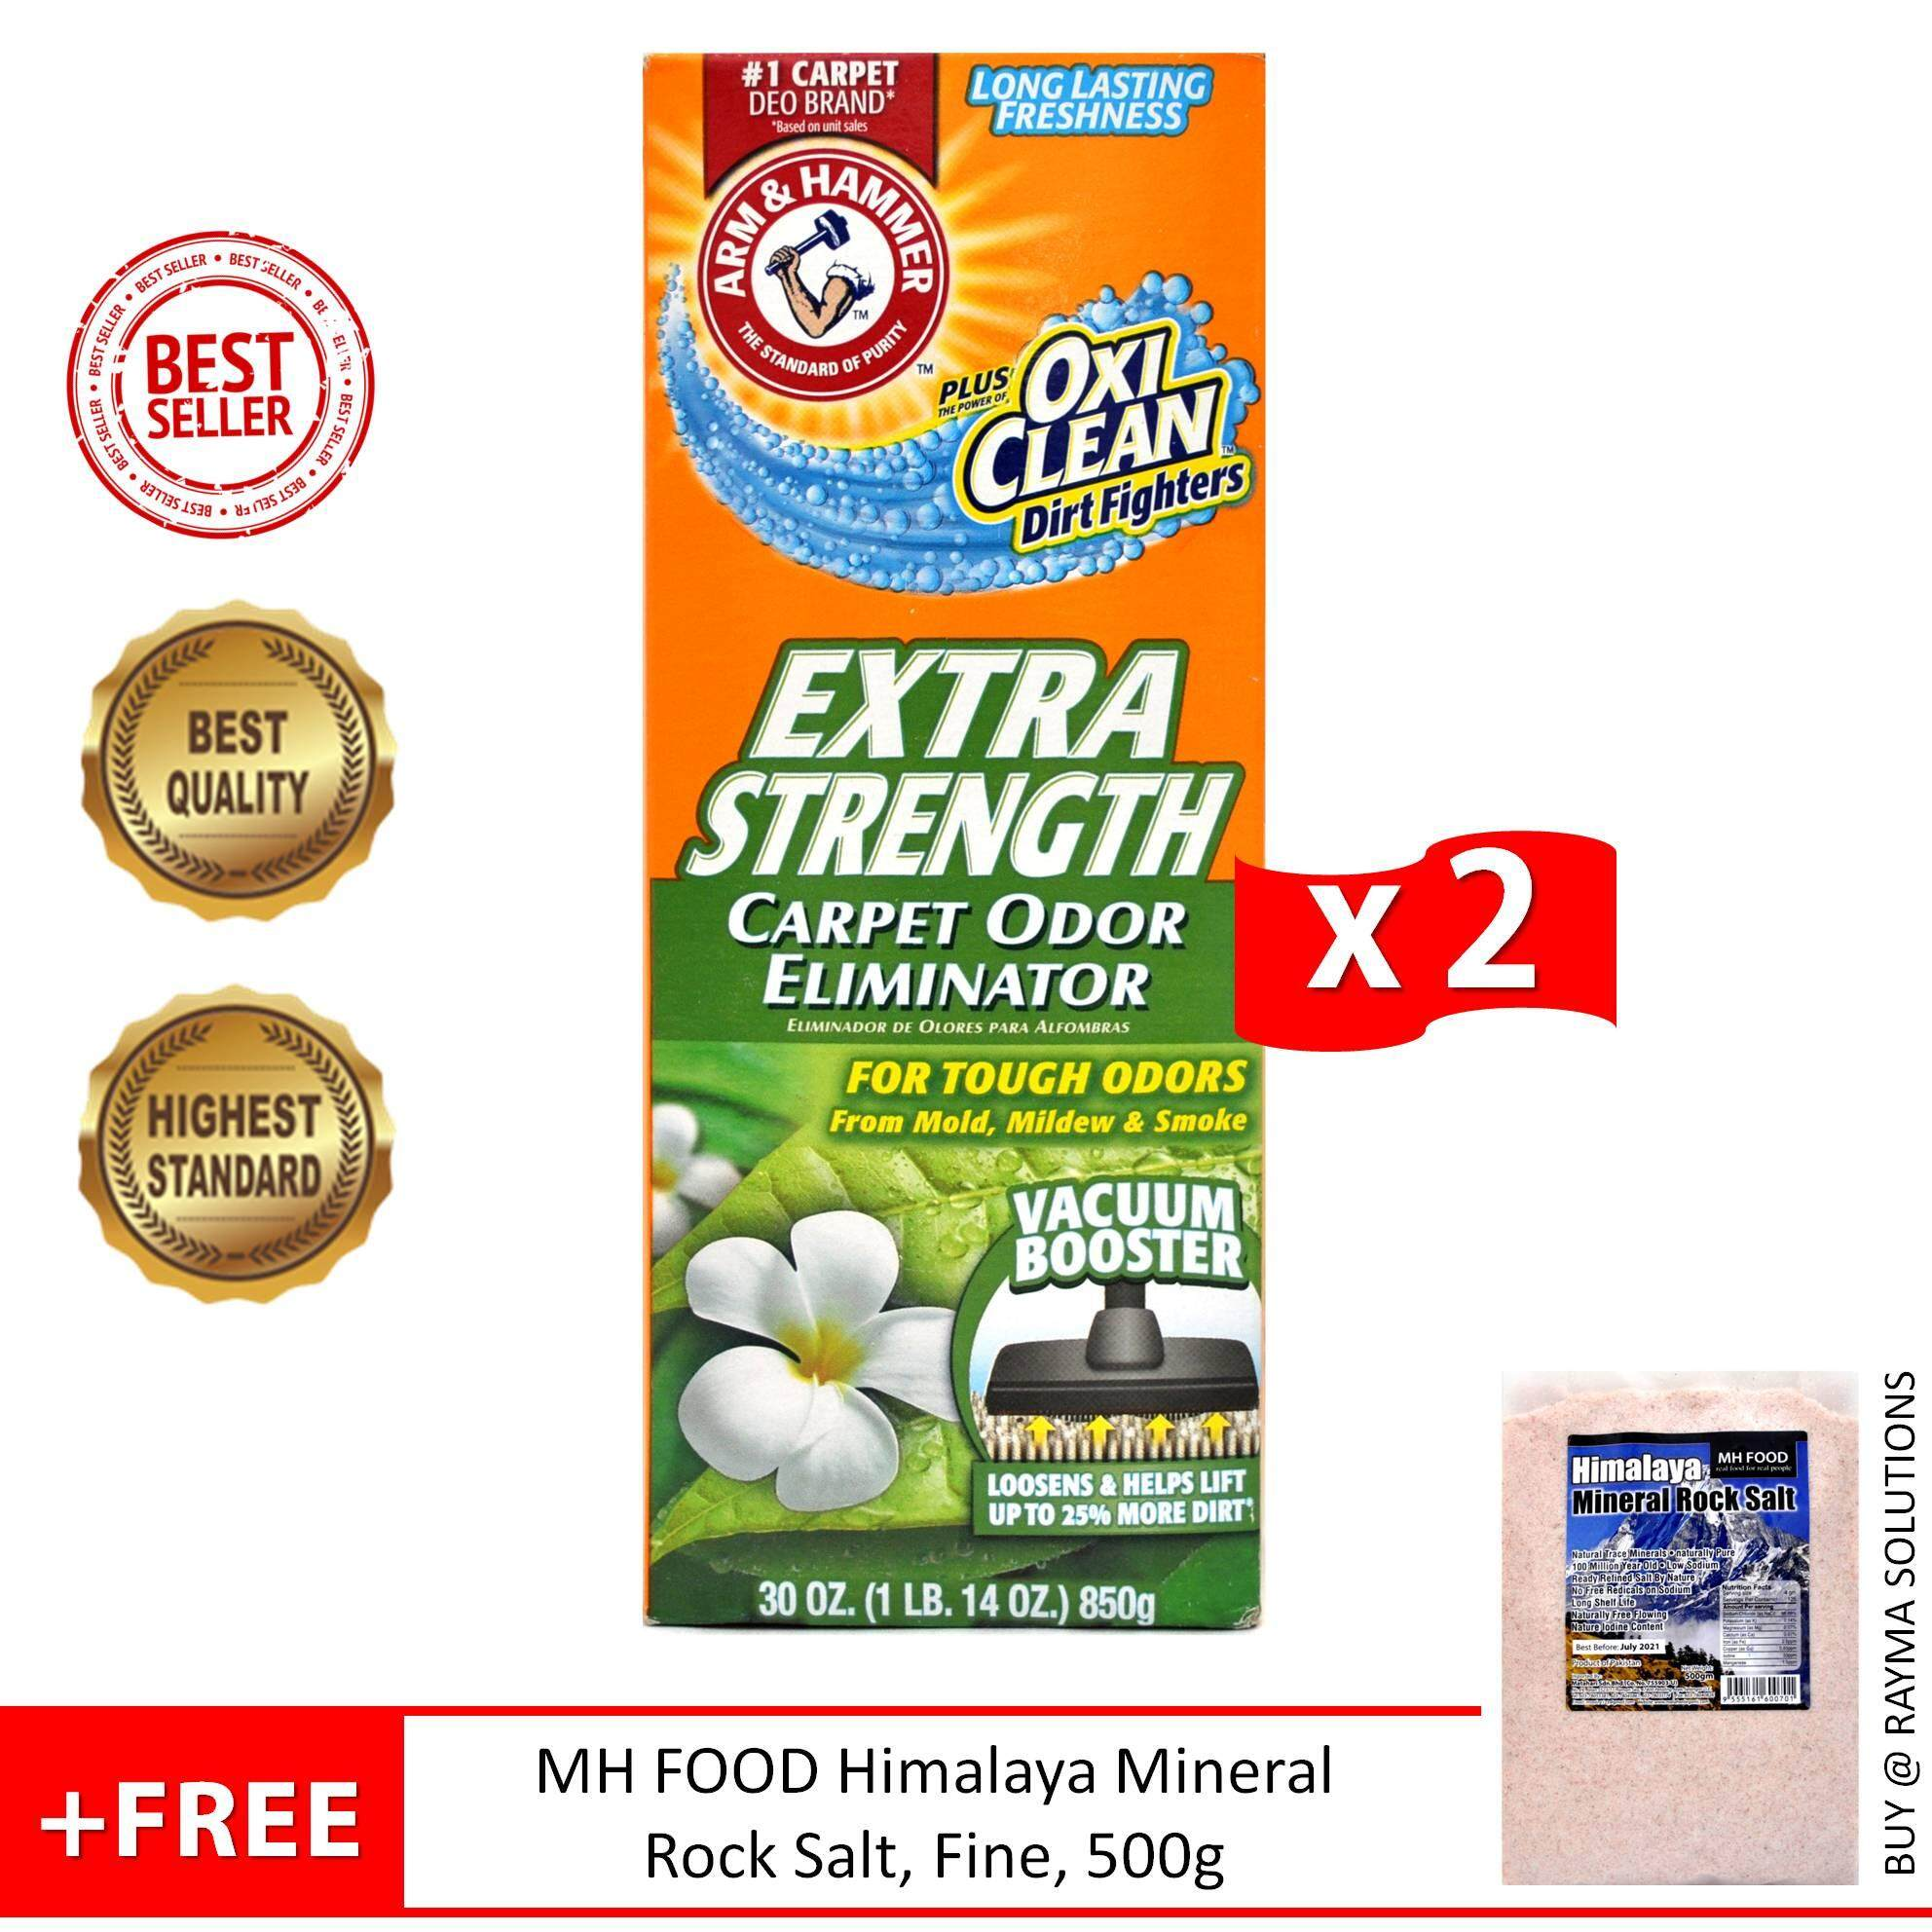 [$AVE More] ARM & HAMMER Extra Strength Carpet Odor Eliminator, Plus OxiClean Dirt Fighters, 850g - Twin Pack